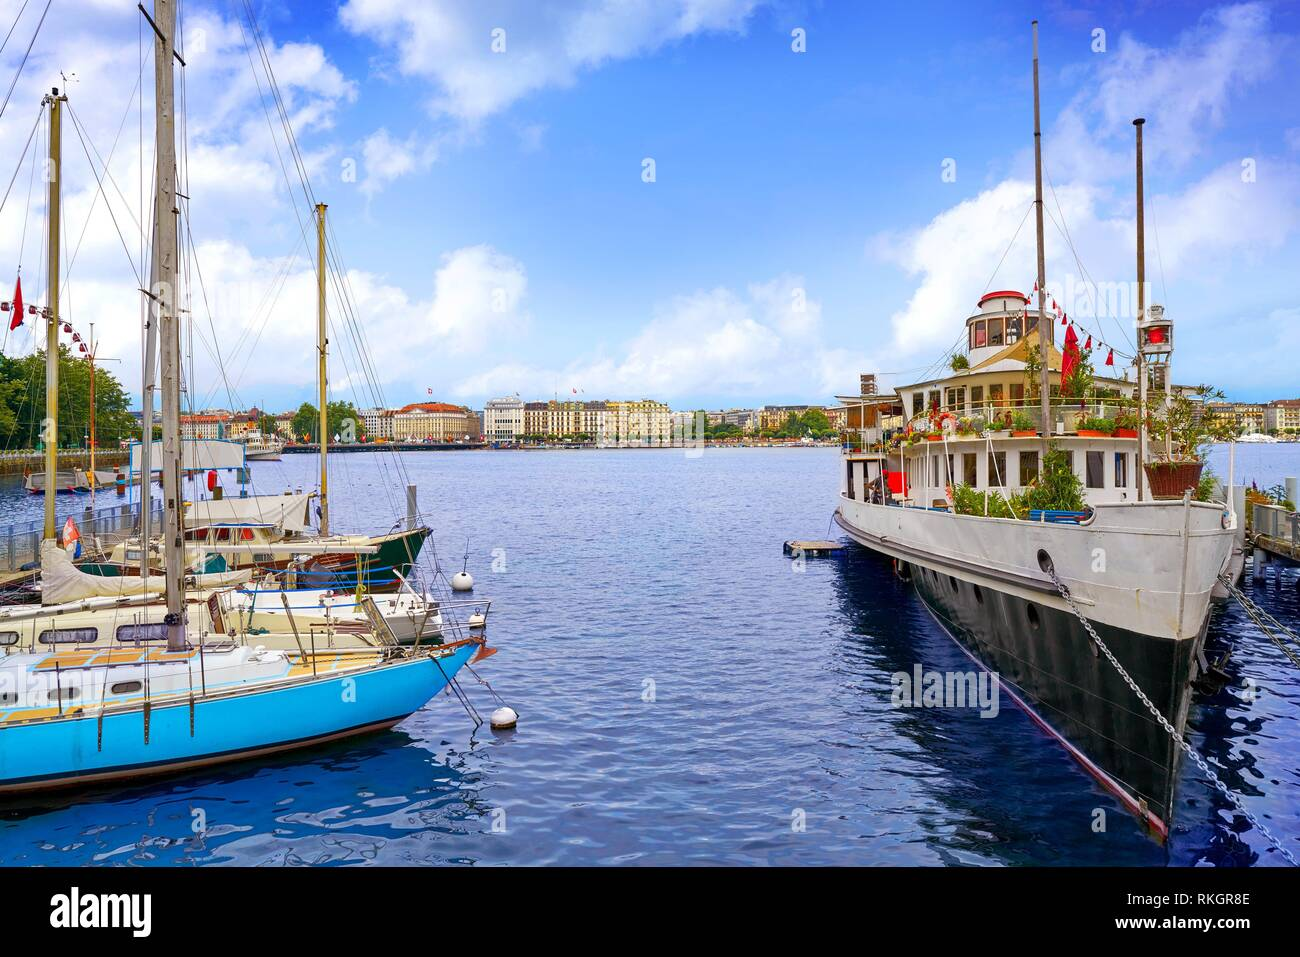 Geneve lake Geneva of Switzerland Swiss at Leman lake. - Stock Image